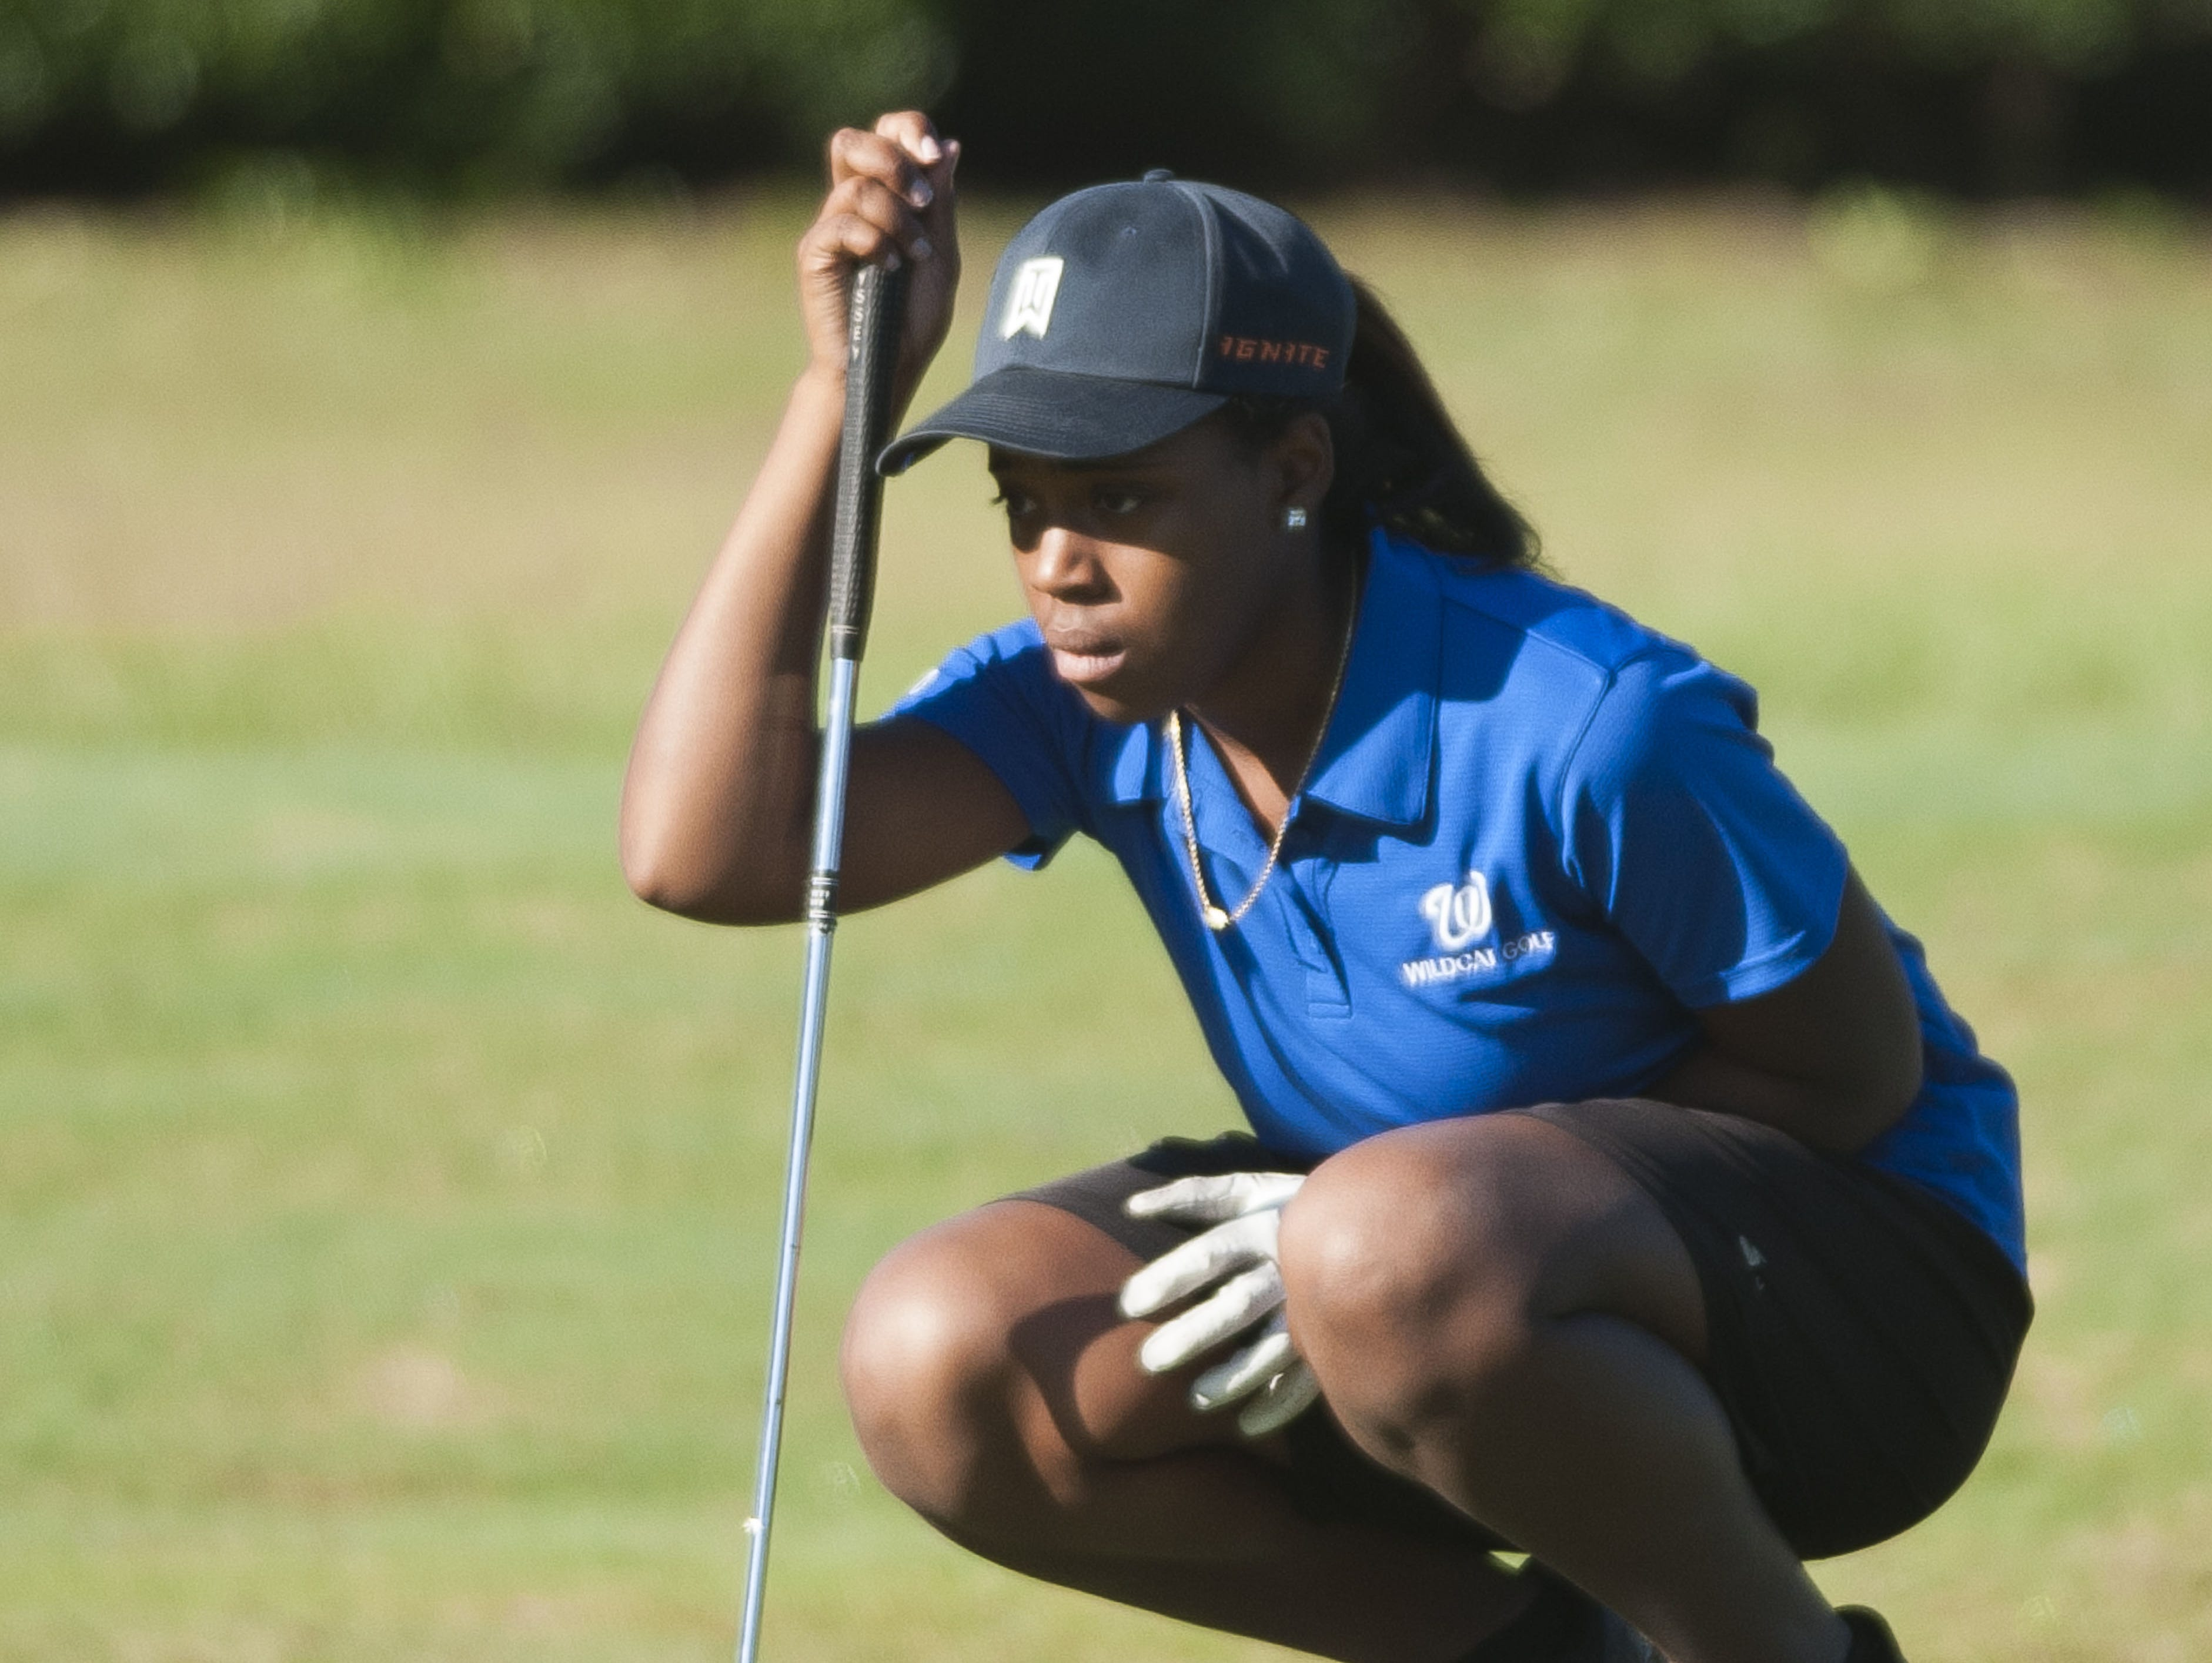 Washington High senior Jade Sanders advanced to the state golf tournament after solid play Tuesday in the Region 1-2A Tournament.